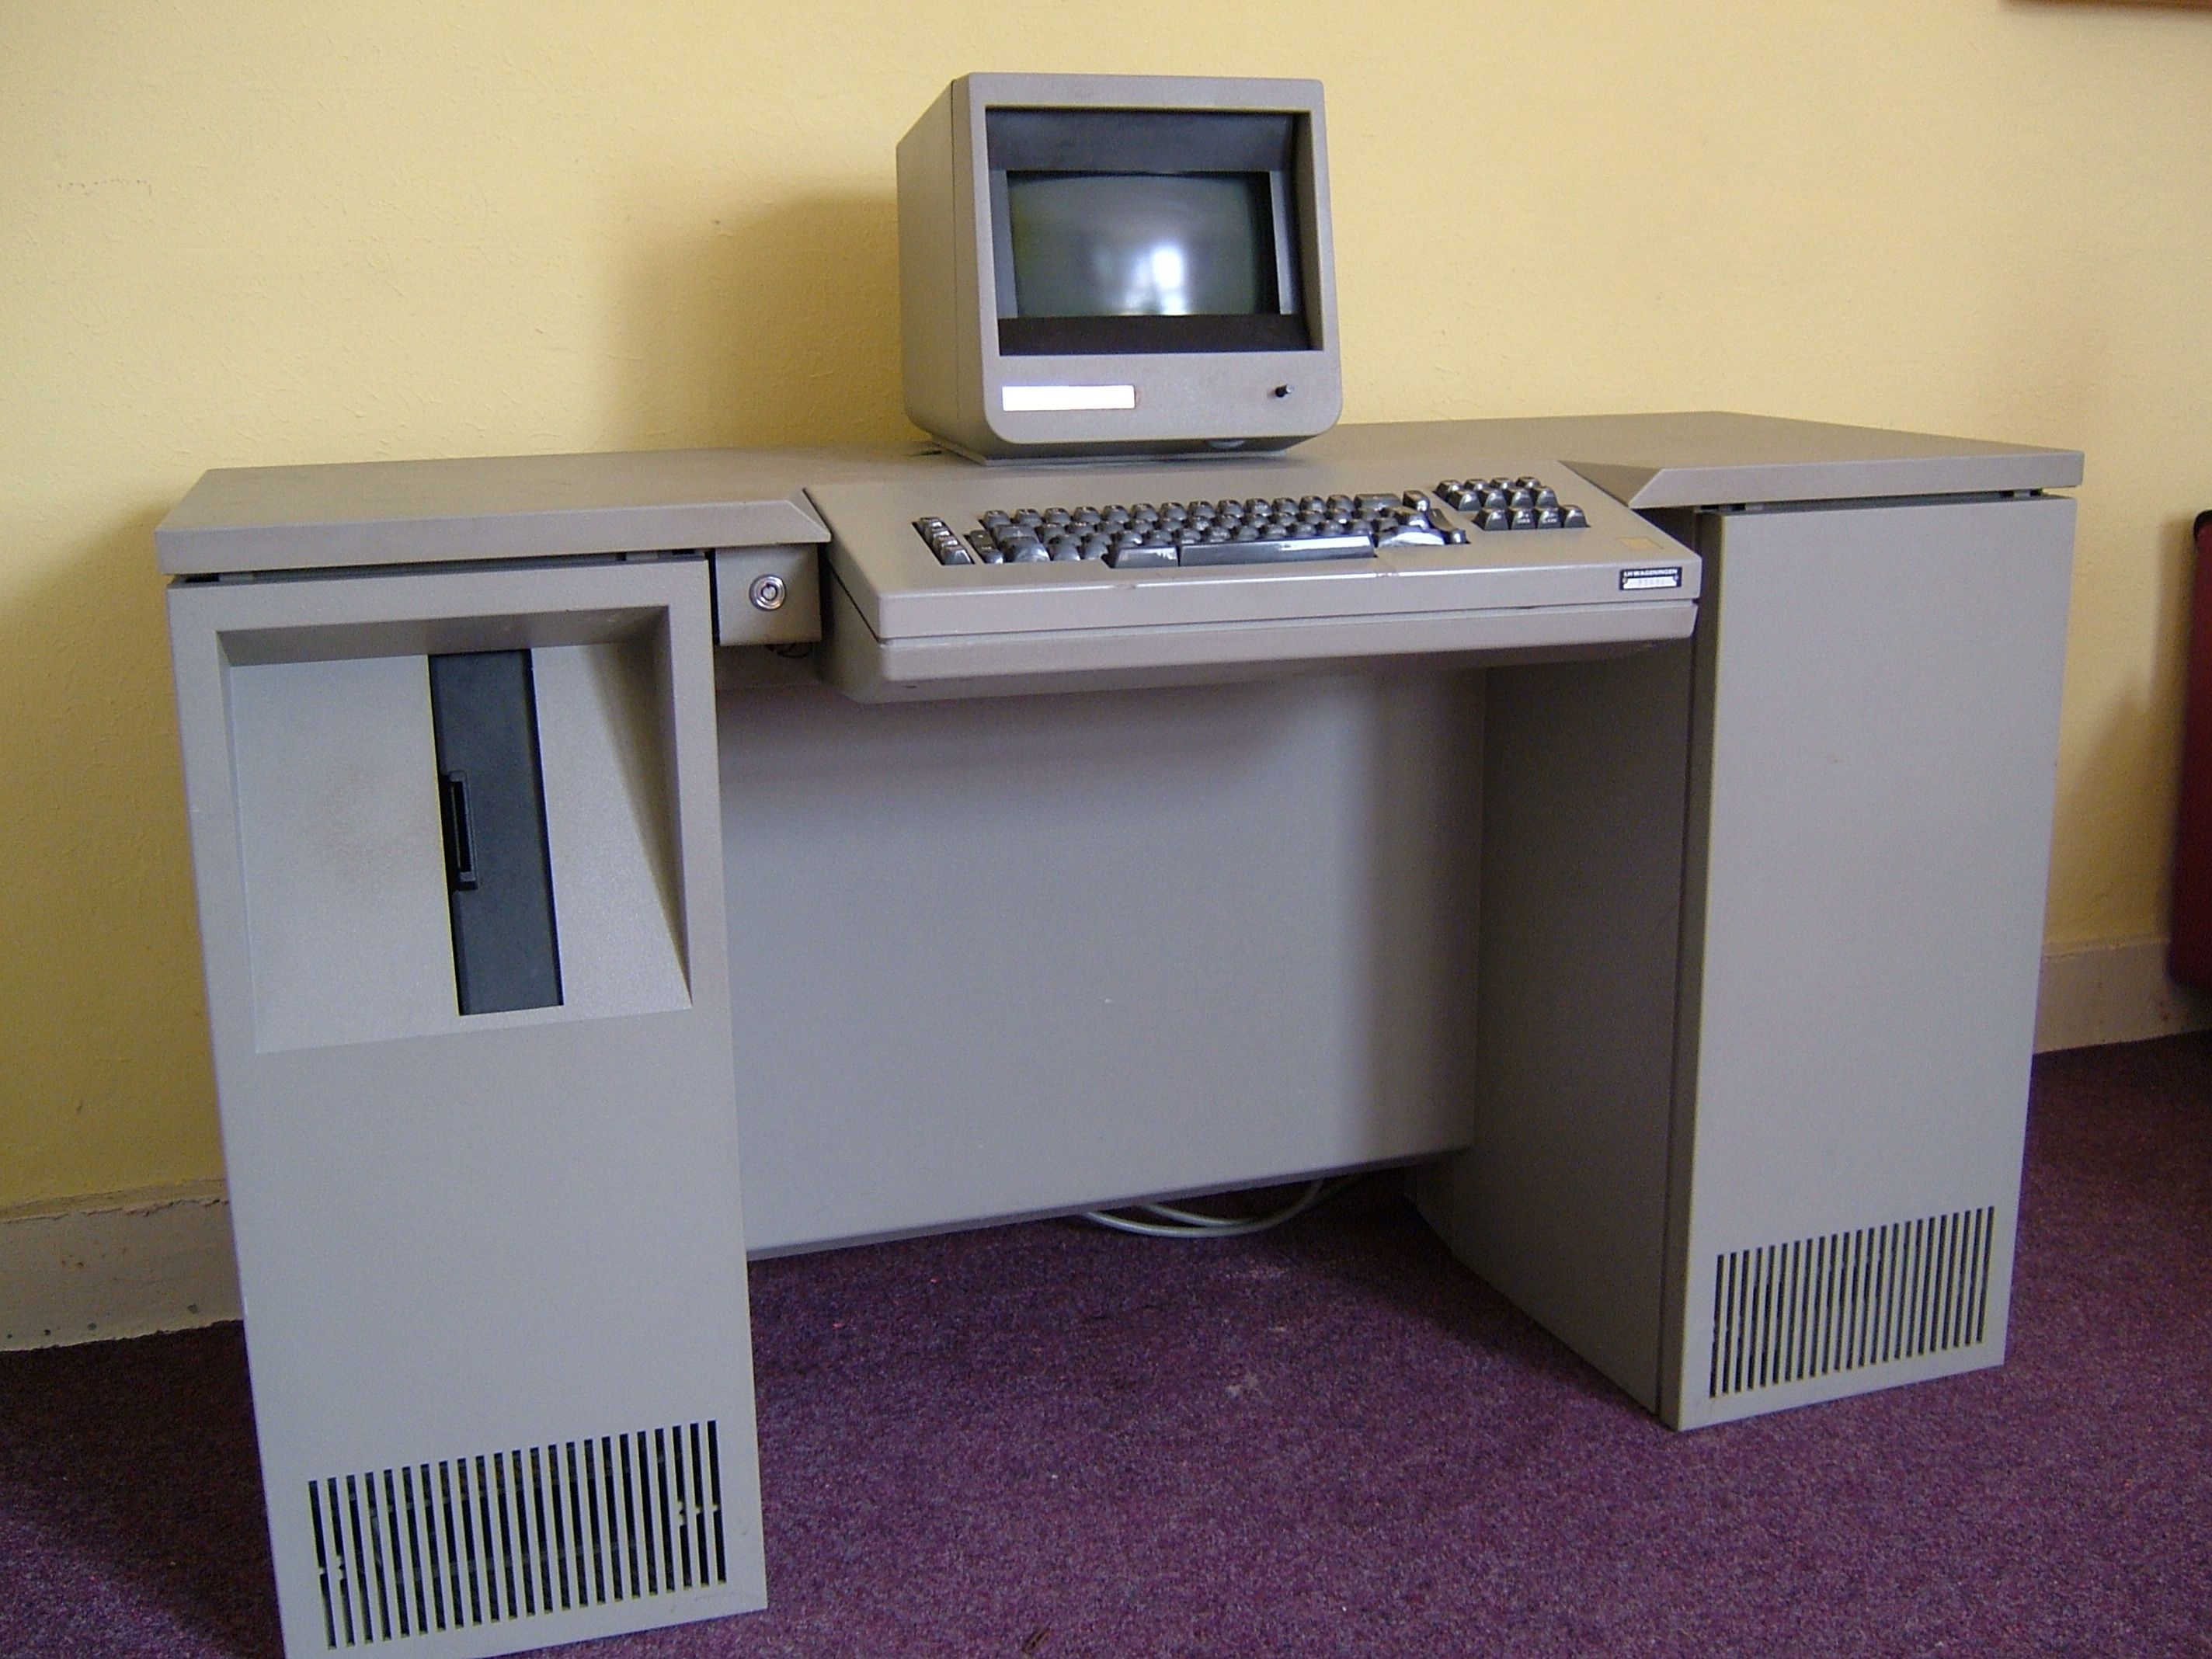 ibm word processor - Google Search